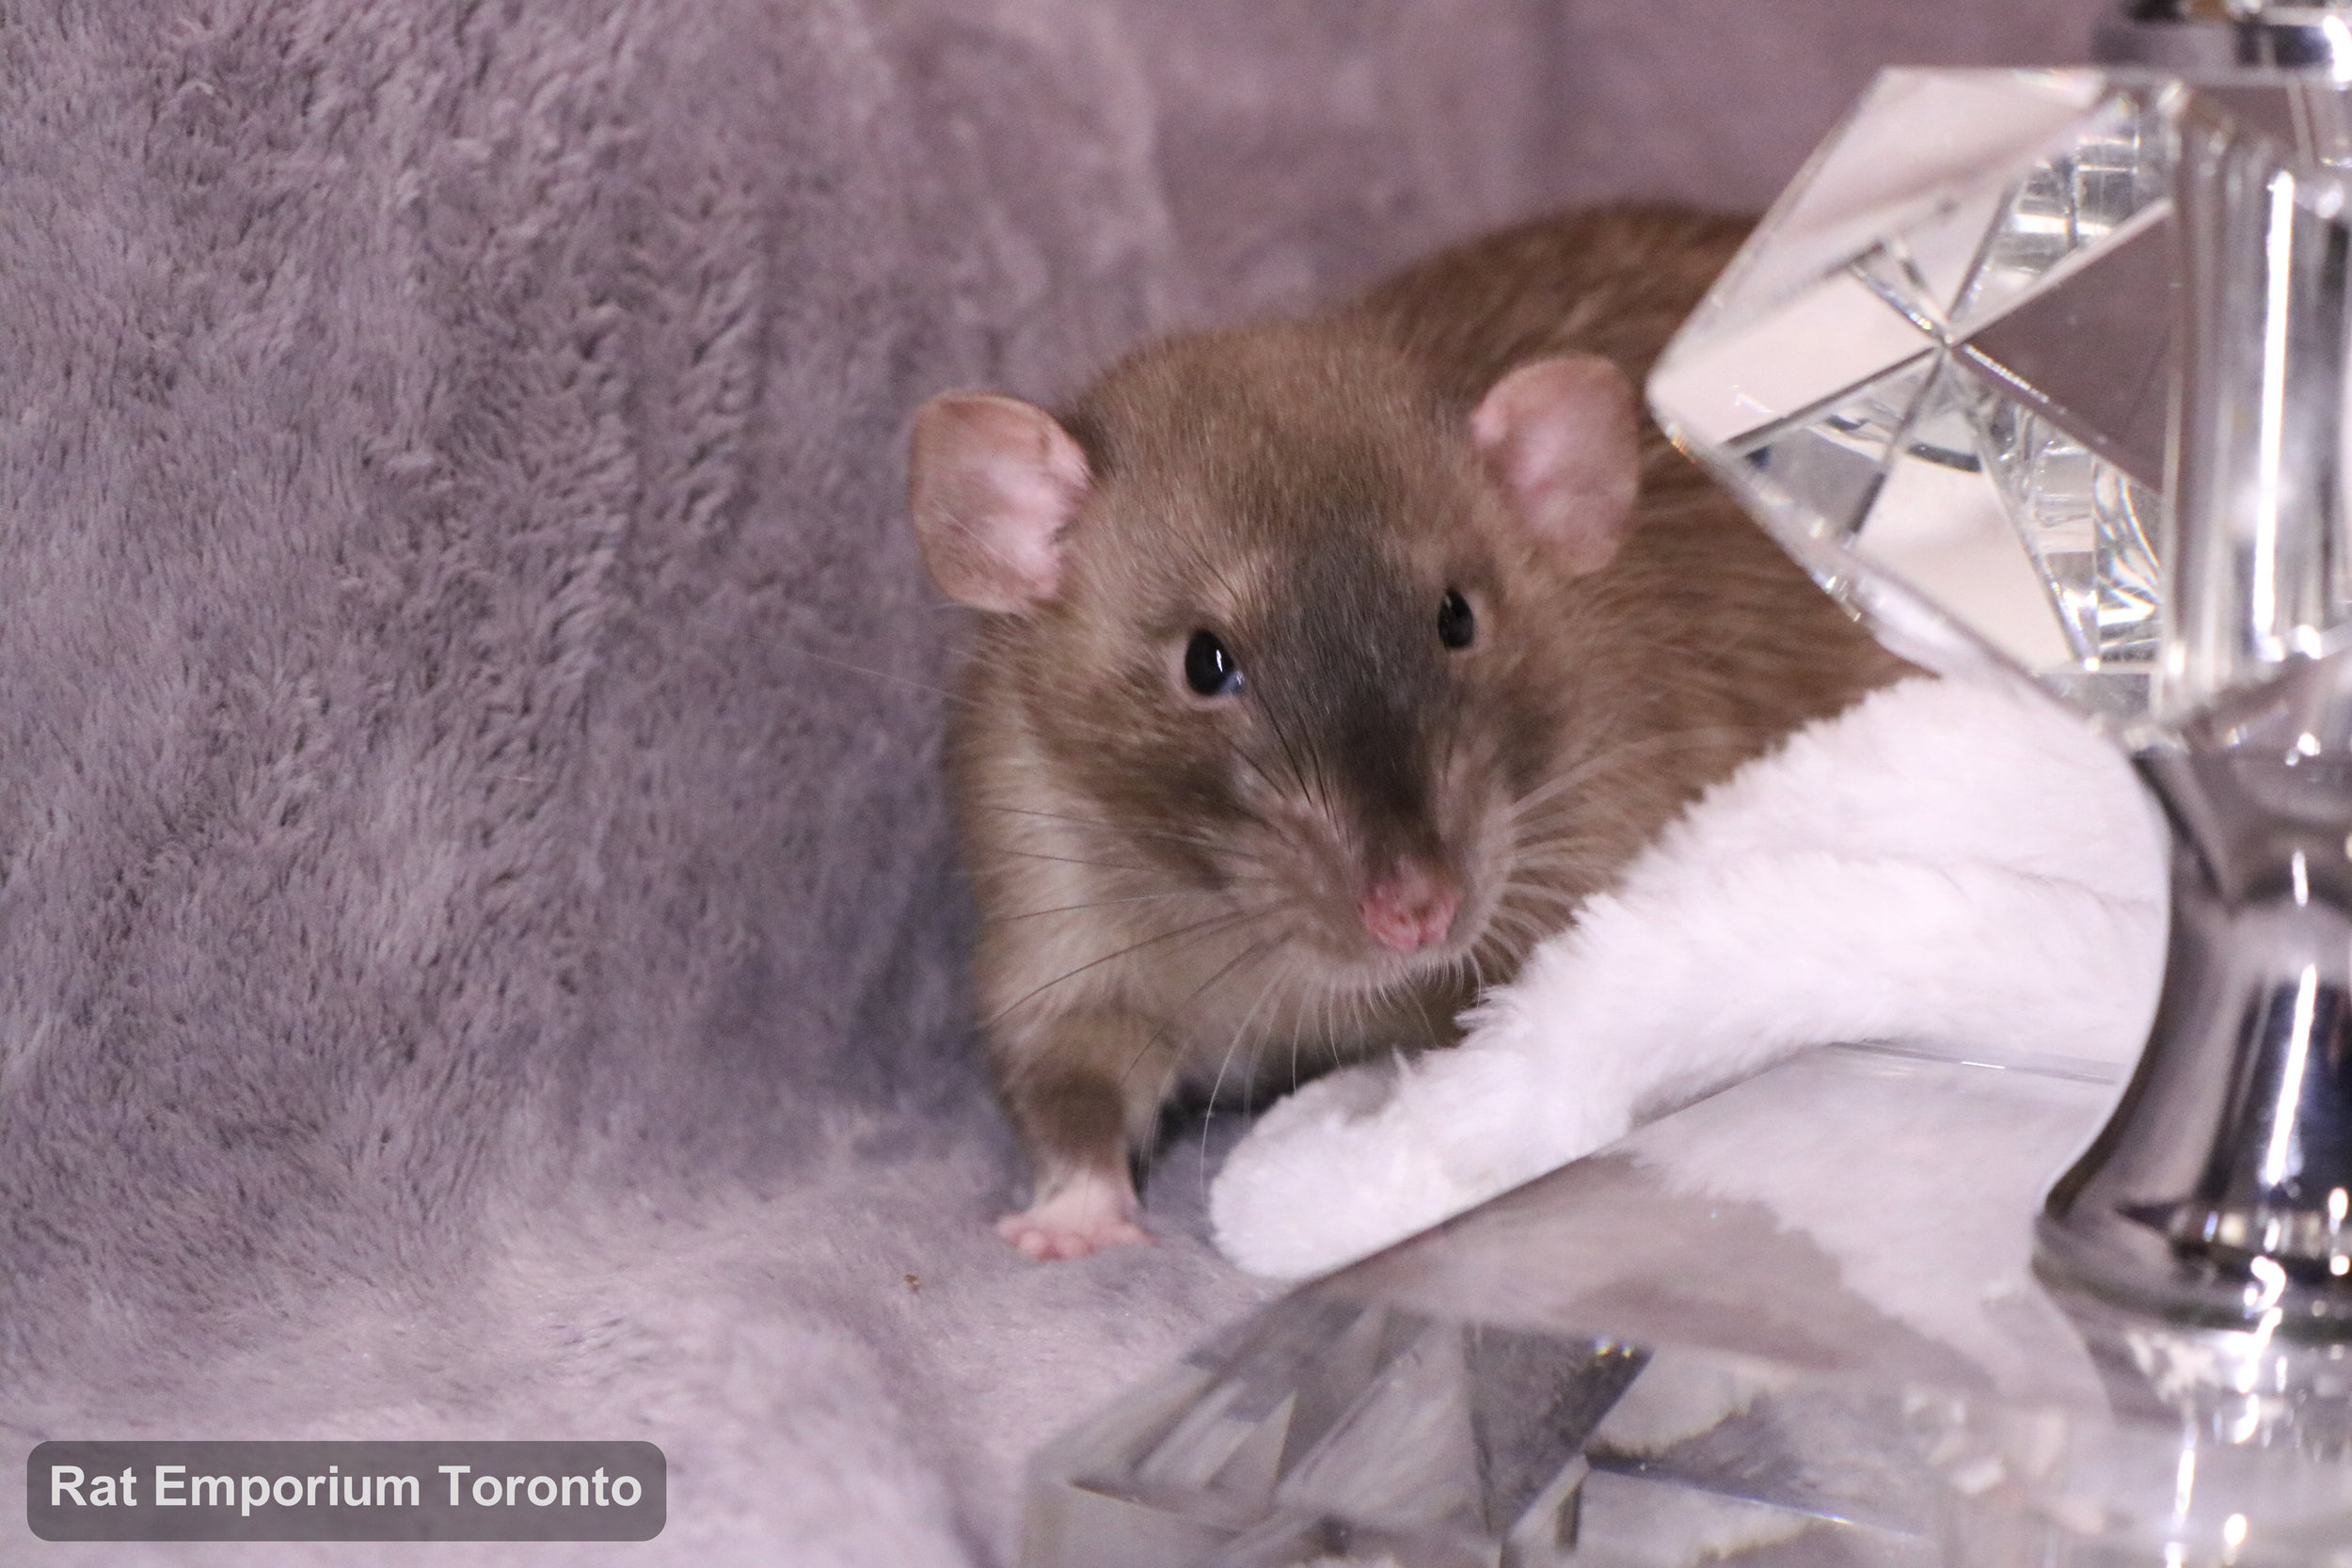 Truffle, my sable dumbo rat - born and raised at the Rat Emporium Toronto - adopt pet rats - rat breeder